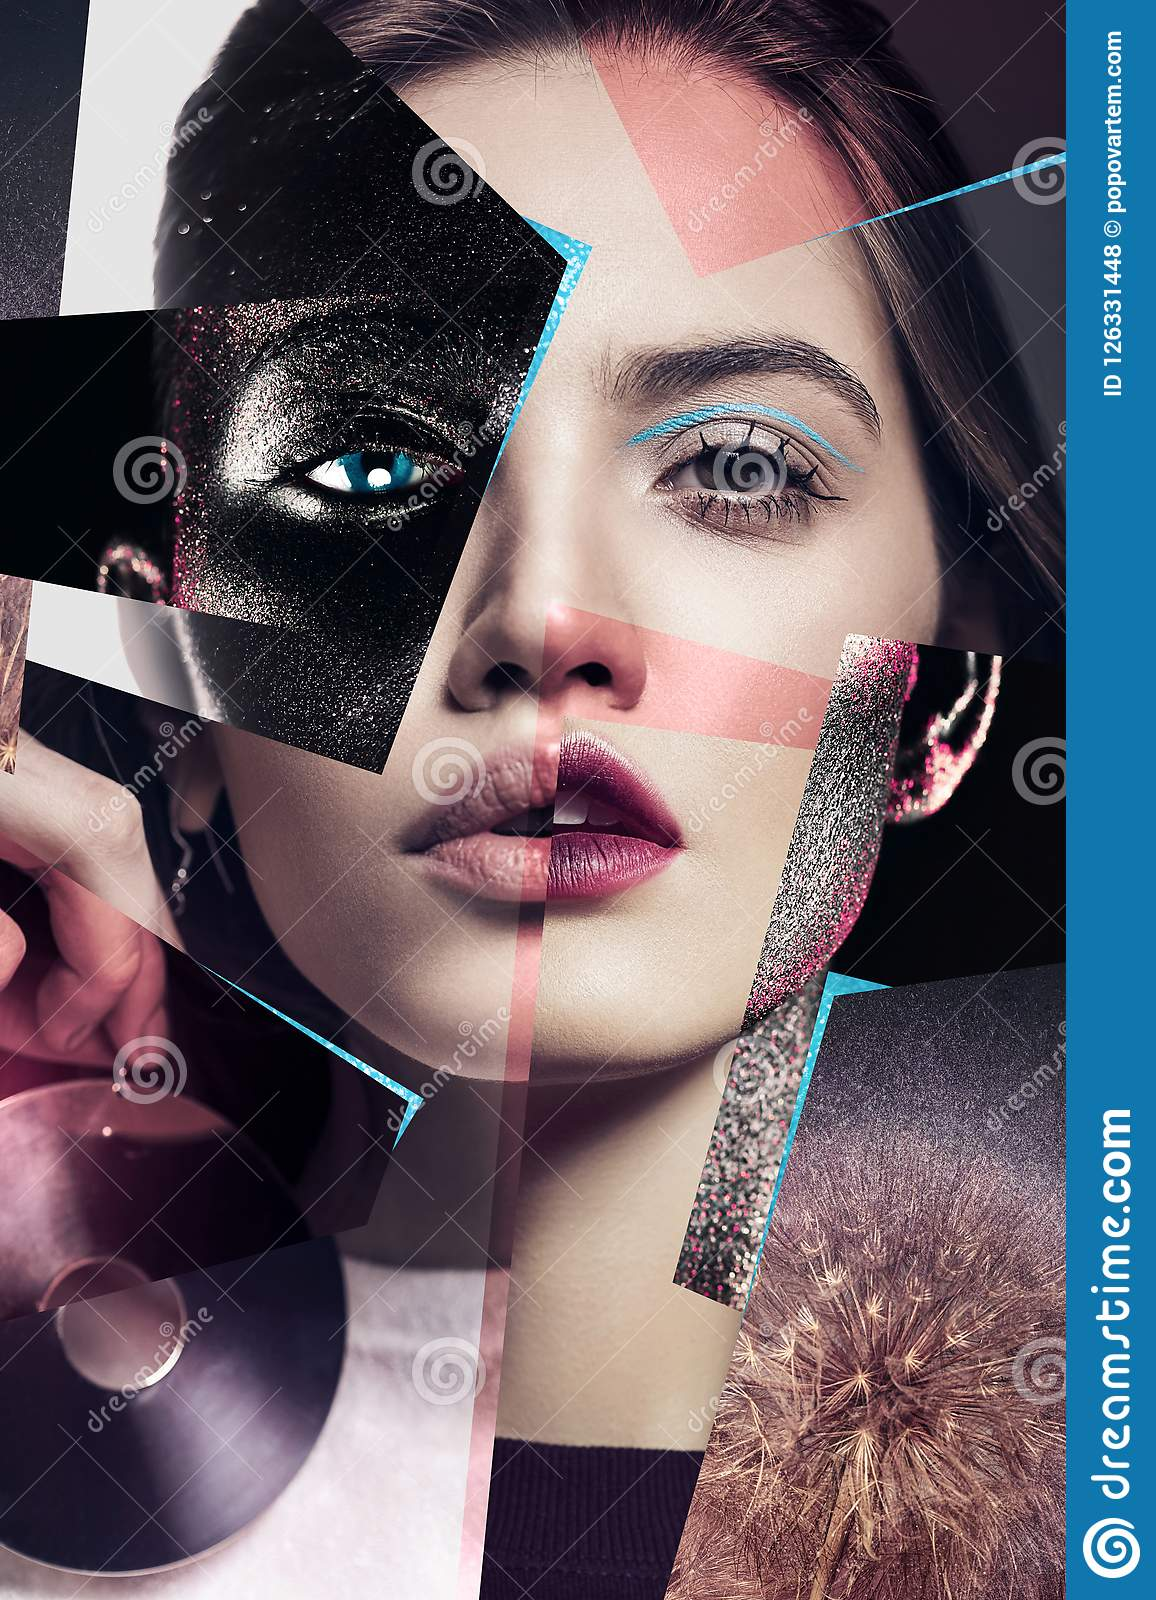 Composition Of Women Portraits With Large Earrings And Body Art Stock Photo Image Of Collage Professional 126331448